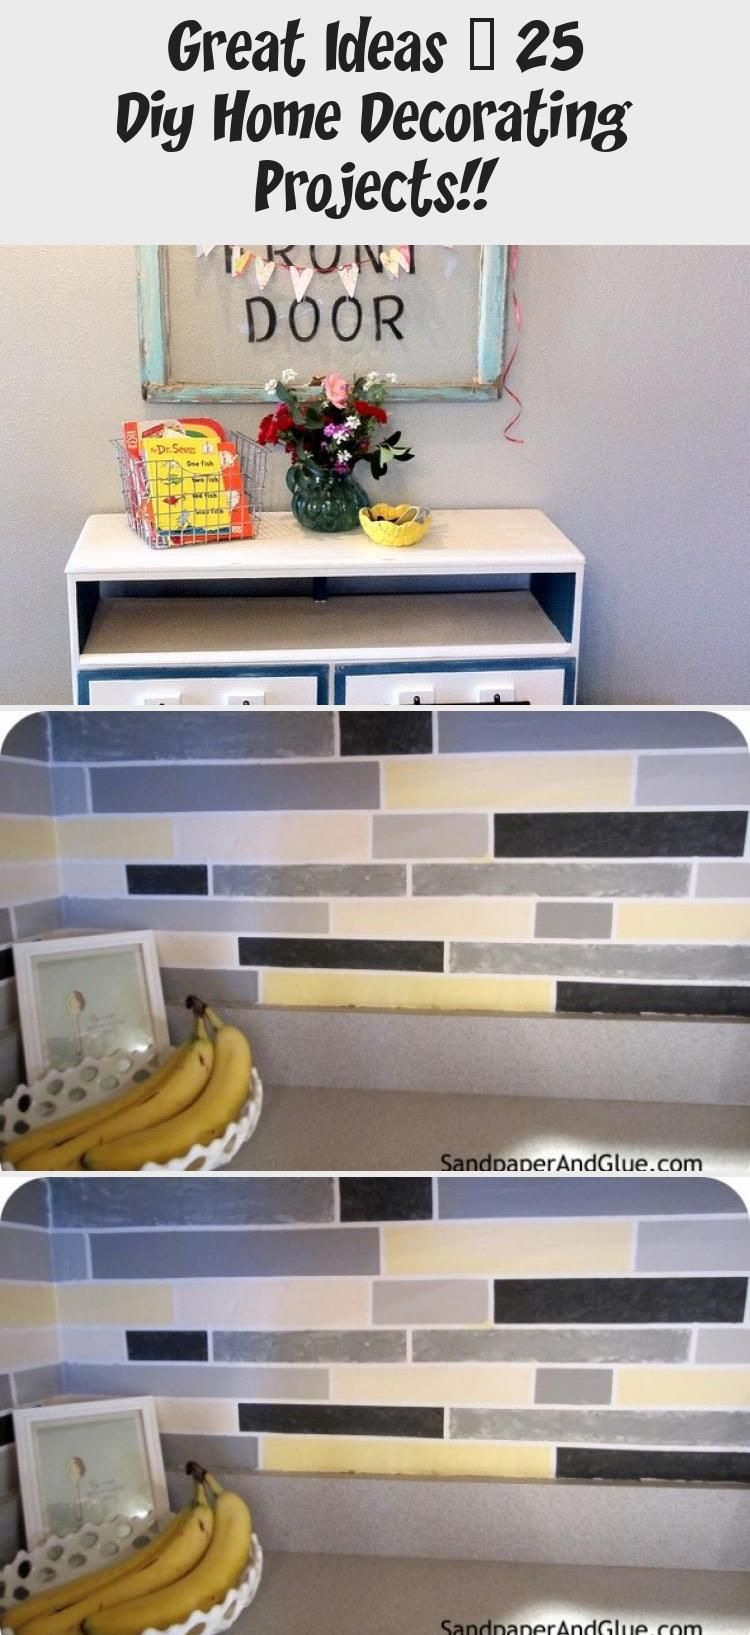 All Things Home 25 Diy Decor Projects Homedecorideas Homedecor Homeideas Allhomeideas Allthingshome Home Diy Hom In 2020 Diy Decor Projects Decor Home Decor